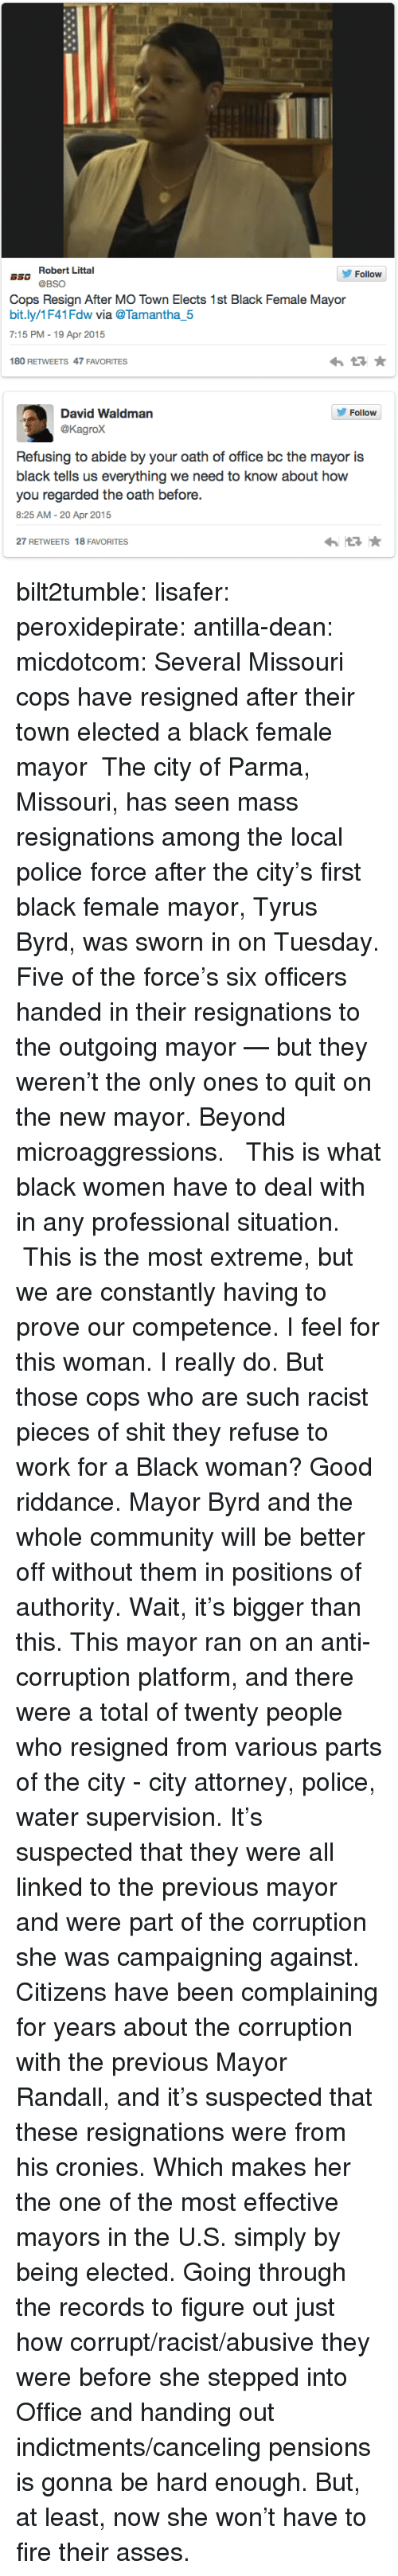 randall: Robert Littal  Follow  aso @BSO  Cops Resign After MO Town Elects 1st Black Female Mayor  bit.ly/1F41Fdw wia @Tamantha5  7:15 PM - 19 Apr 2015  わ ★  180 RETWEETS 47 FAVORITES   David Waldman  @Kagrox  Follow  Refusing to abide by your oath of office bc the mayor is  black tells us everything we need to know about how  you regarded the oath before.  8:25 AM-20 Apr 2015  27 RETWEETS 18 FAVORITES bilt2tumble:  lisafer:  peroxidepirate:  antilla-dean:   micdotcom:    Several Missouri cops have resigned after their town elected a black female mayor  The city of Parma, Missouri, has seen mass resignations  among the local police force after the city's first black female  mayor, Tyrus Byrd, was sworn in on Tuesday. Five of the force's six officers handed in their resignations to the outgoing mayor — but they weren't the only ones to quit on the new mayor.   Beyond microaggressions.   This is what black women have to deal with in any professional situation.  This is the most extreme, but we are constantly having to prove our competence.   I feel for this woman. I really do.  But those cops who are such racist pieces of shit they refuse to work for a Black woman? Good riddance. Mayor Byrd and the whole community will be better off without them in positions of authority.  Wait, it's bigger than this. This mayor ran on an anti-corruption platform, and there were a total of twenty people who resigned from various parts of the city - city attorney, police, water supervision.  It's suspected that they were all linked to the previous mayor and were part of the corruption she was campaigning against. Citizens have been complaining for years about the corruption with the previous Mayor Randall, and it's suspected that these resignations were from his cronies.  Which makes her the one of the most effective mayors in the U.S. simply by being elected.   Going through the records to figure out just how corrupt/racist/abusive they were before she stepped into Office and handing out indictments/canceling pensions is gonna be hard enough. But, at least, now she won't have to fire their asses.